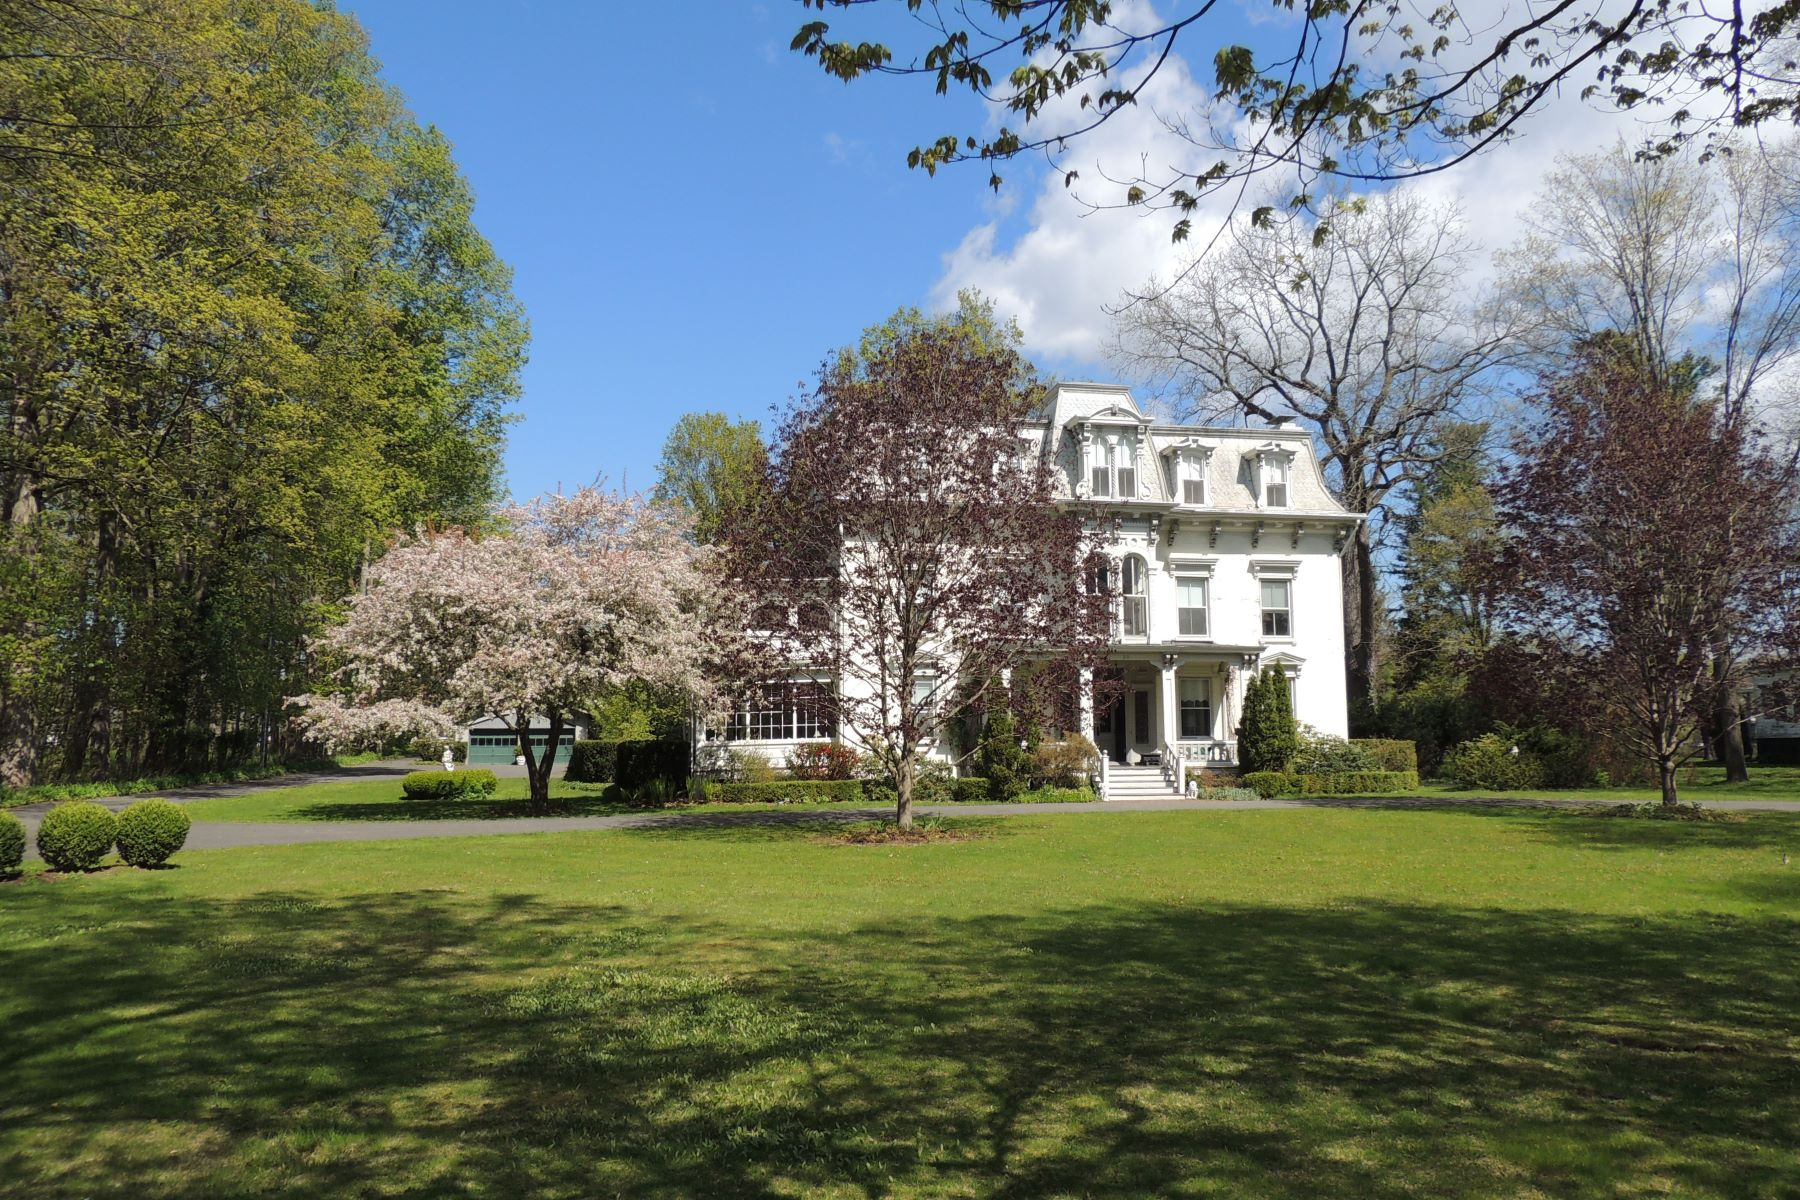 Single Family Homes for Sale at Historic Passion 20 Broad Street Kinderhook, New York 12106 United States